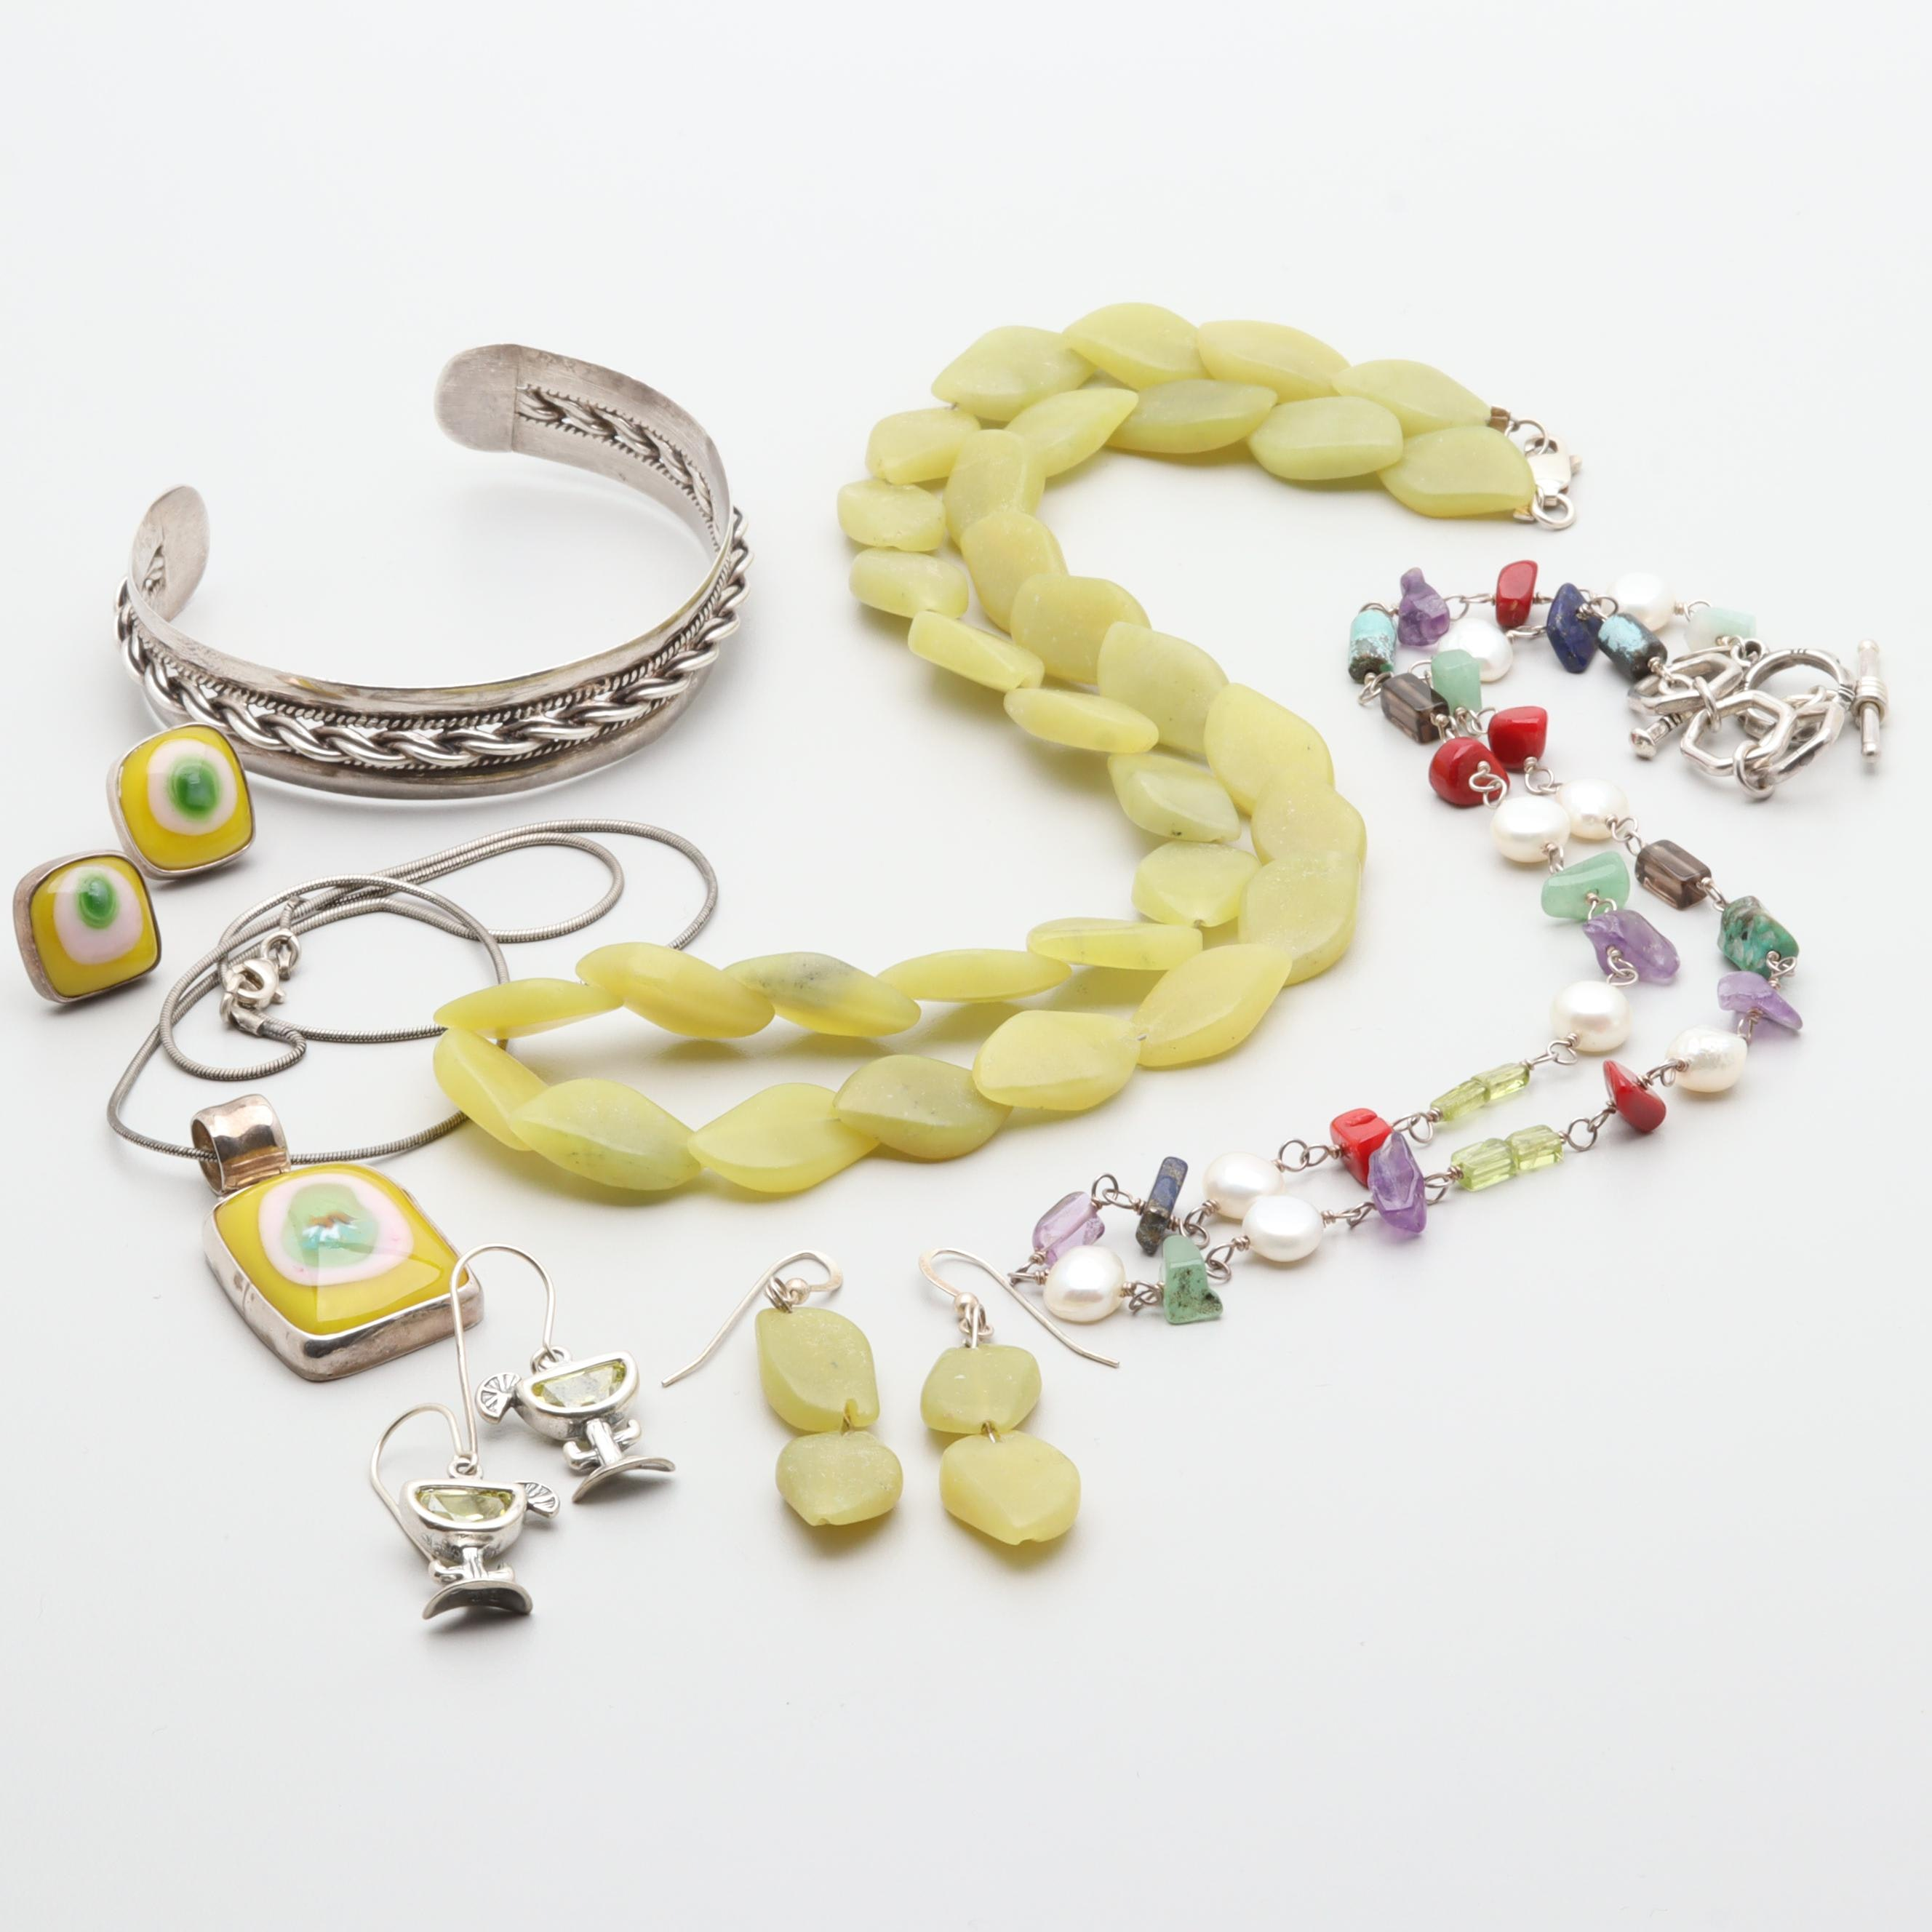 Sterling Silver and 950 Silver Jewelry Assortment Including Mixed Gemstones.